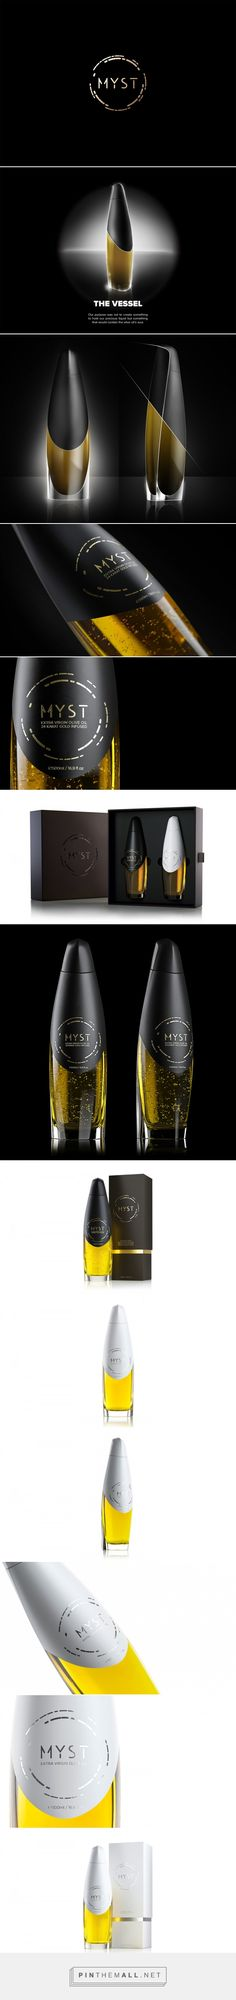 Myst - Ultra Premium OliveOil packaging design - http://www.packagingoftheworld.com/2016/07/myst-ultra-premium-olive-oil.html